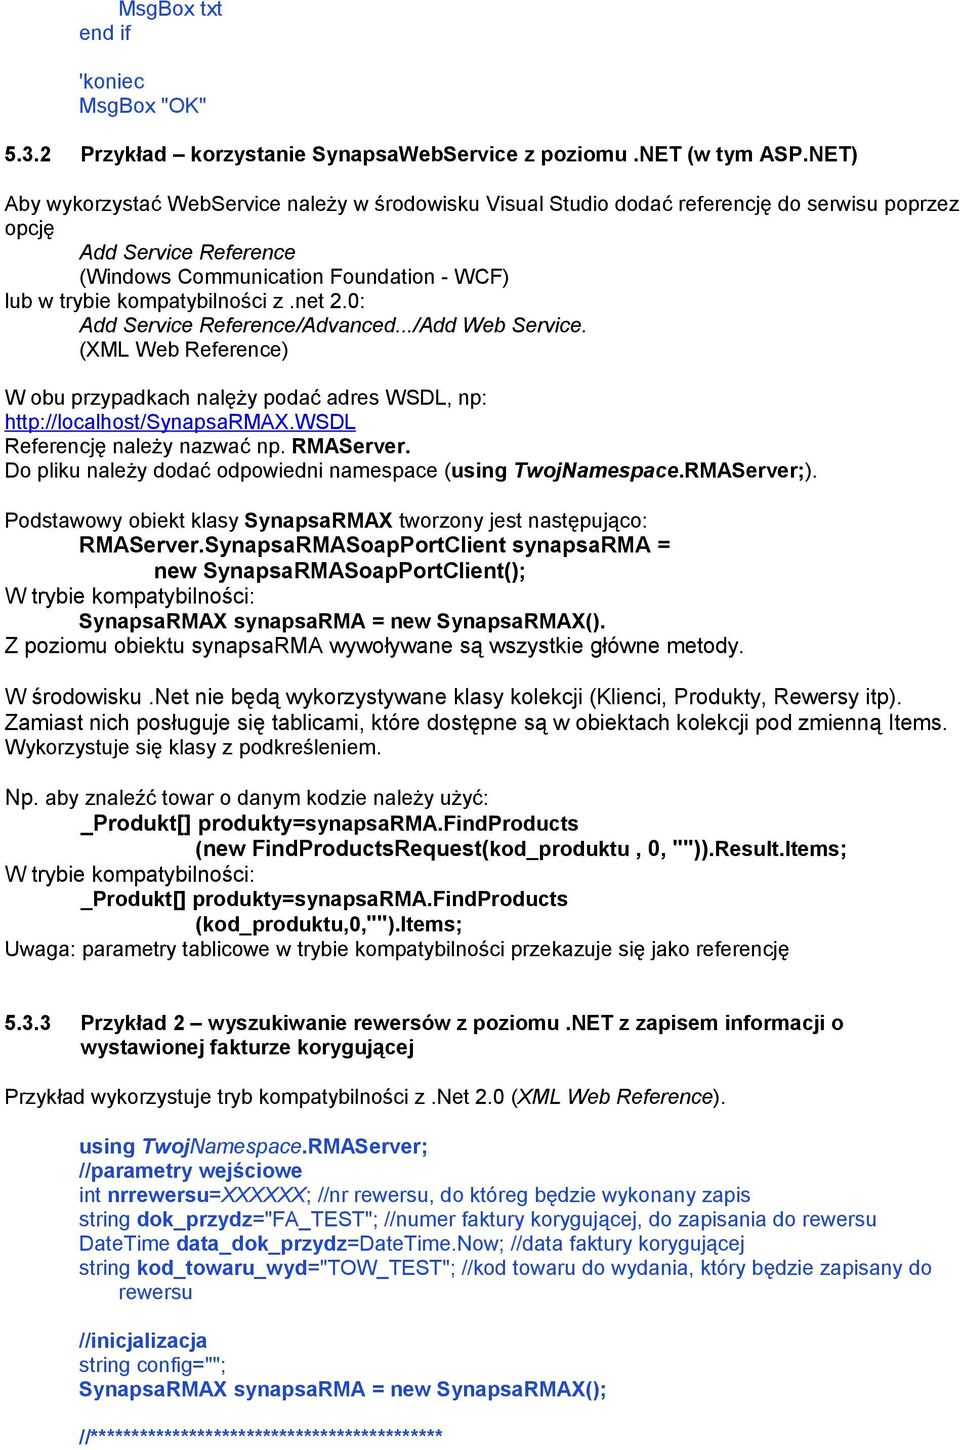 z.net 2.0: Add Service Reference/Advanced.../Add Web Service. (XML Web Reference) W obu przypadkach nalęży podać adres WSDL, np: http://localhost/synapsarmax.wsdl Referencję należy nazwać np.